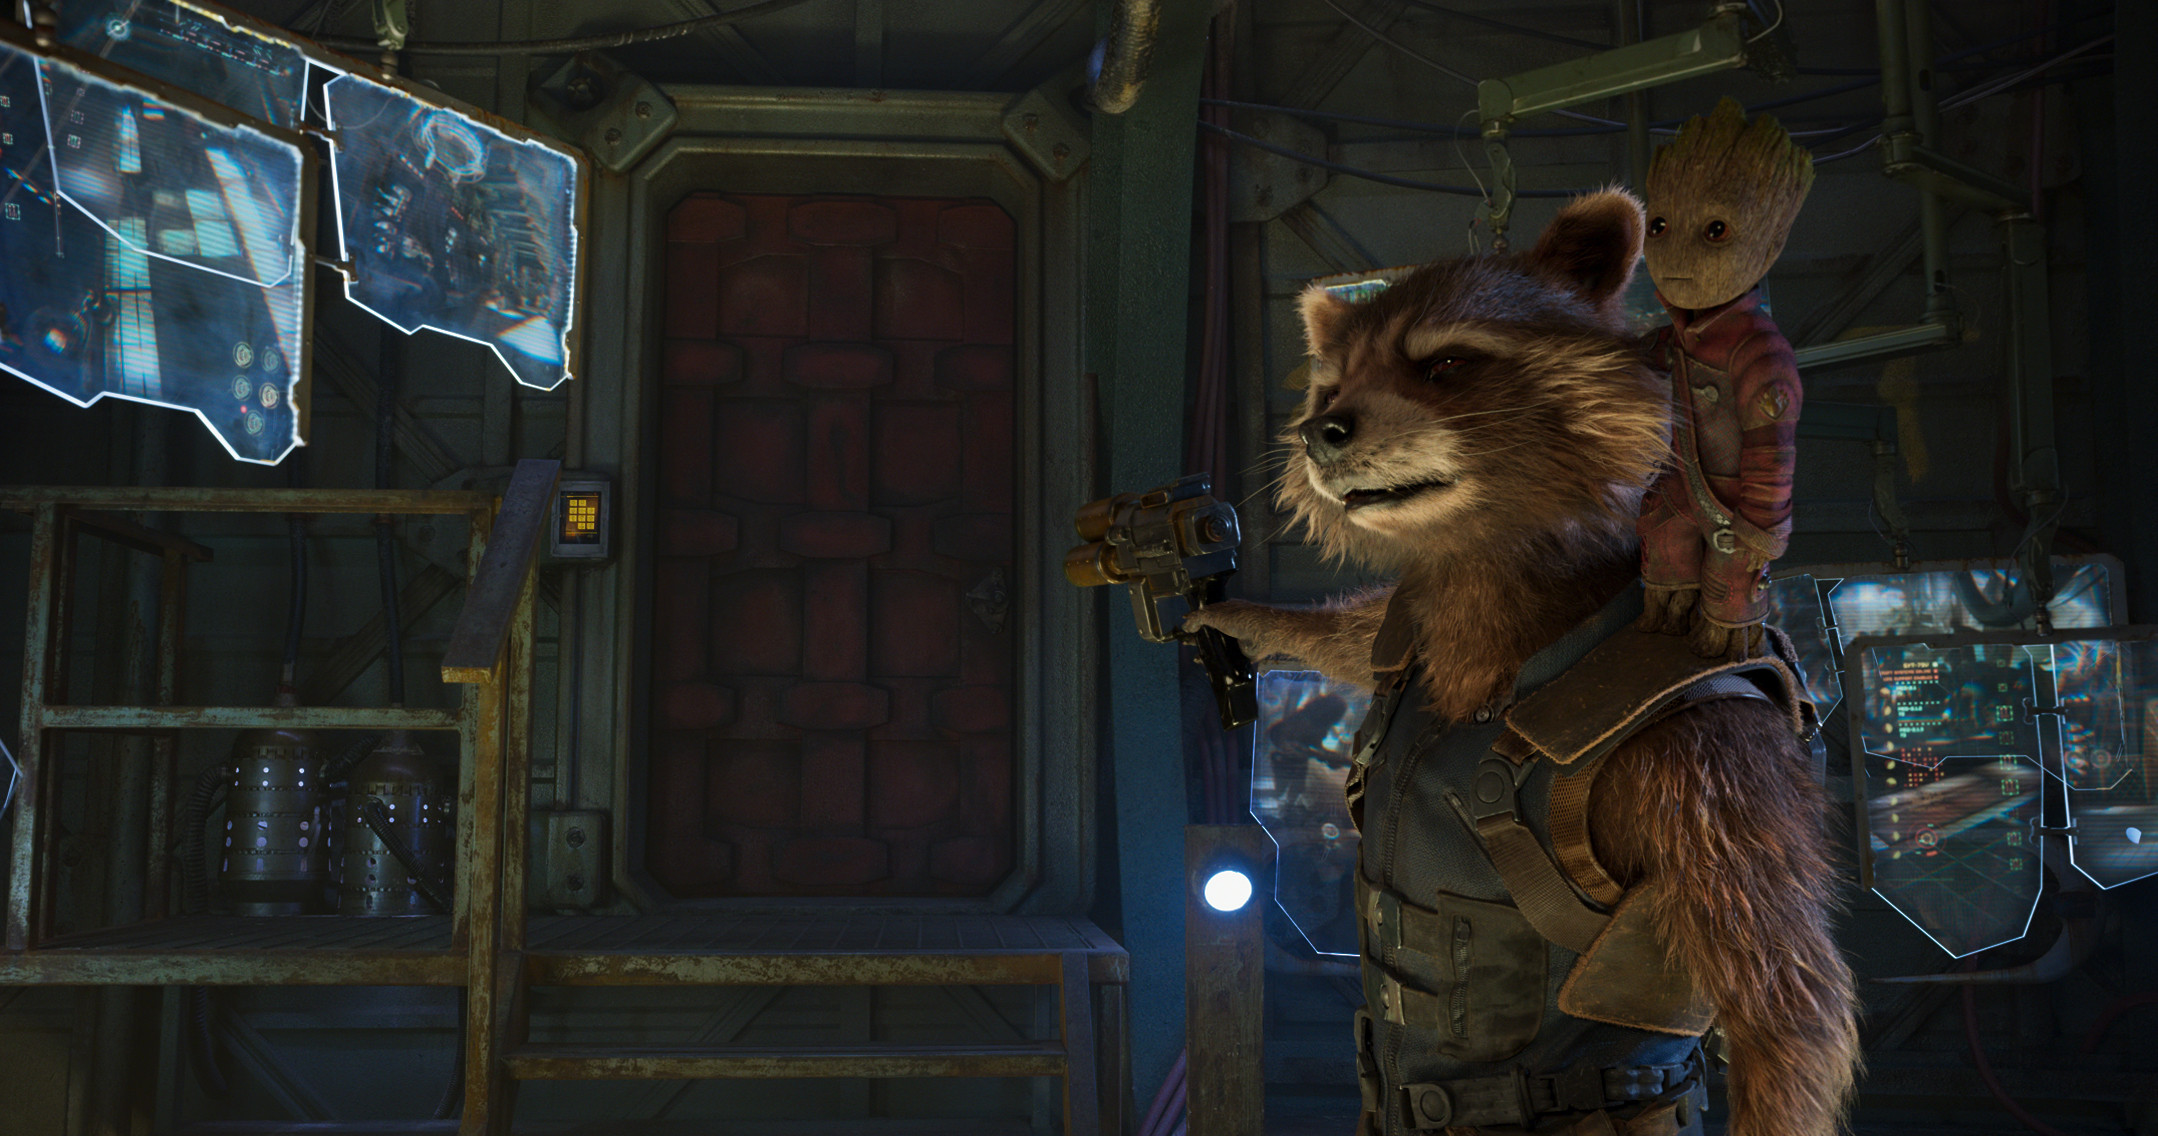 Baby Groot And Rocket Raccoon In Guardians Of The Galaxy